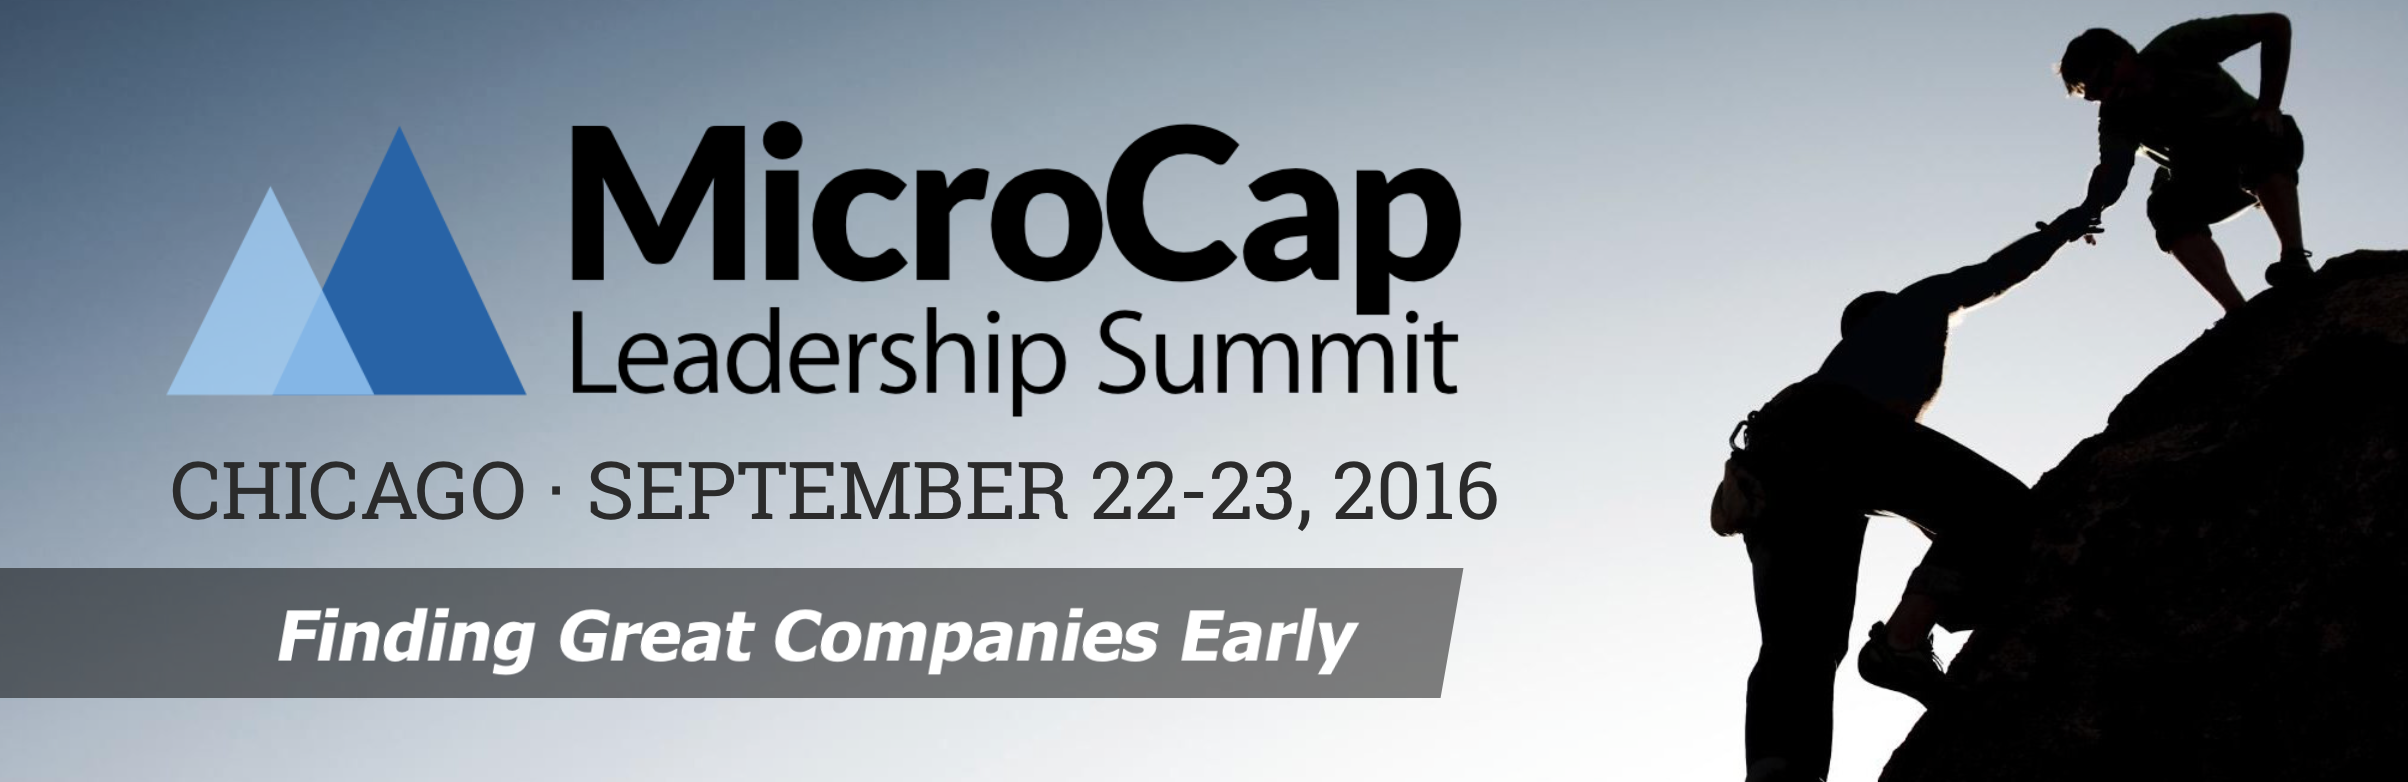 MicroCap Leadership Summit